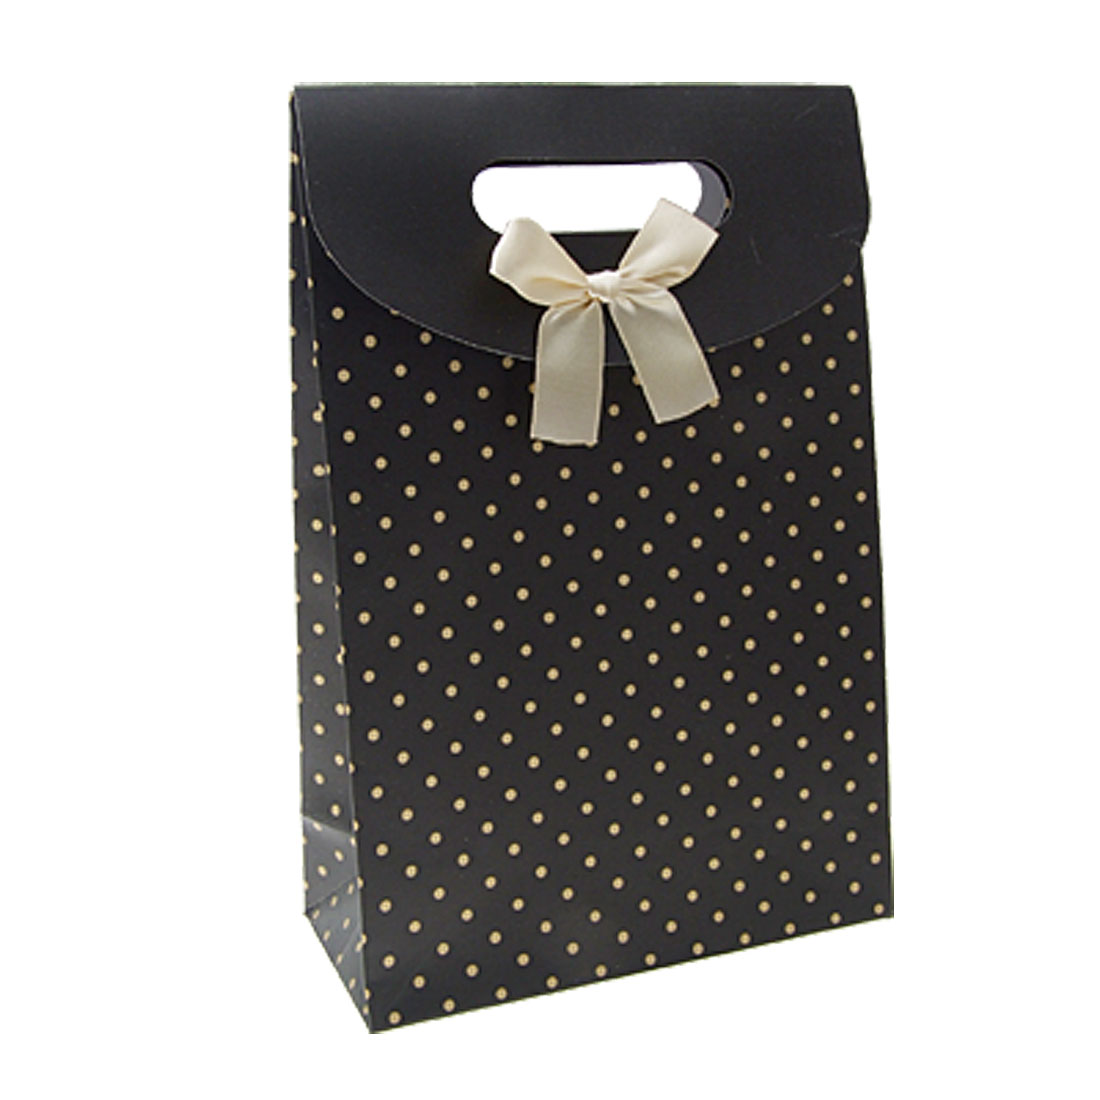 Satin Bowknot Dot Pattern Chic Black Gift Paper Bag